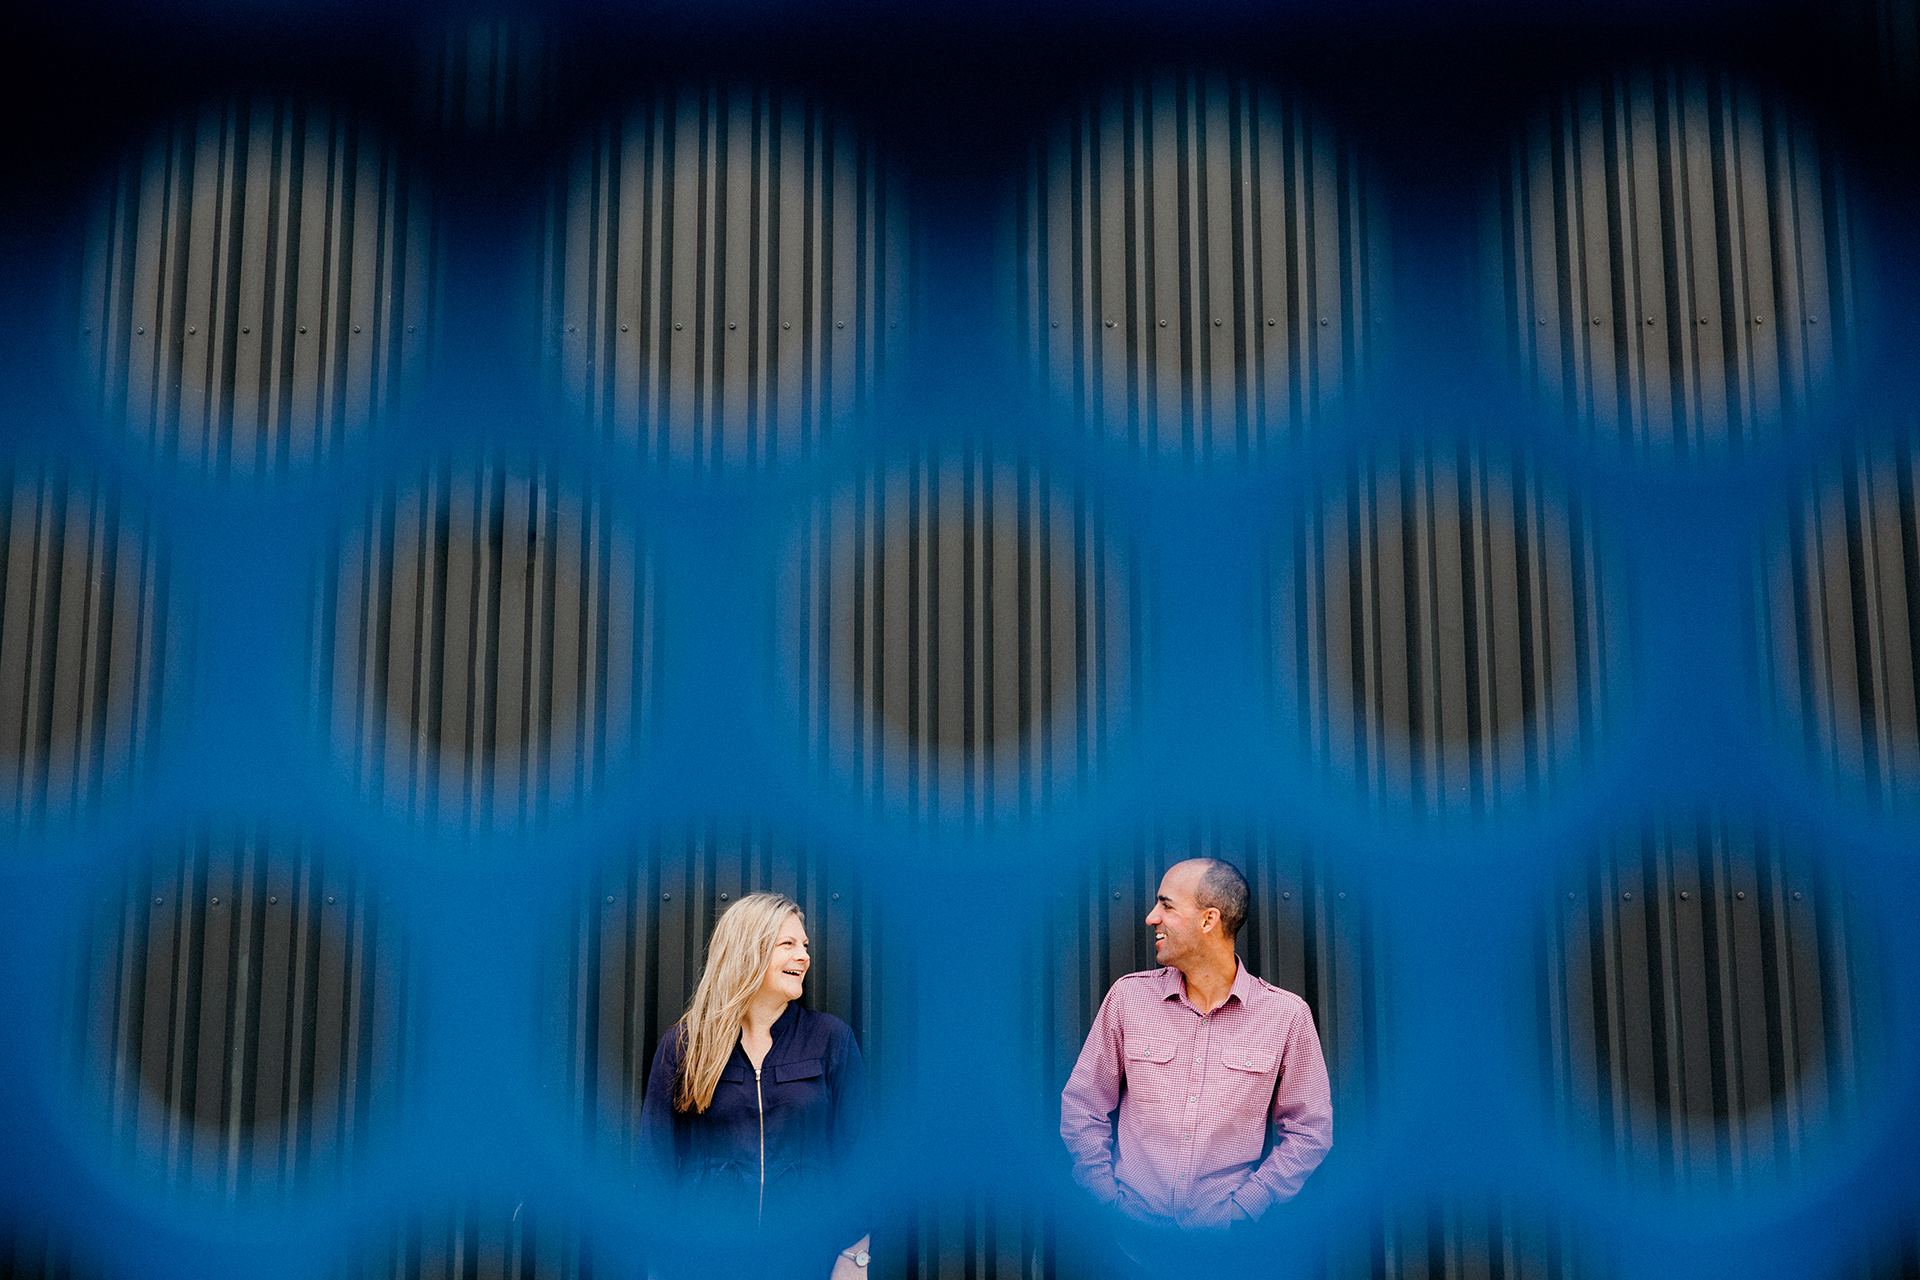 This is a photo taken during an engagement shoot by Mala Photography, an Auckland based engagement and wedding photographer. This photo is of a newly engaged couple looking at each other lovingly and smiling. Mala has photographed them through a milk tray, using the round holes in the tray to frame the couple.